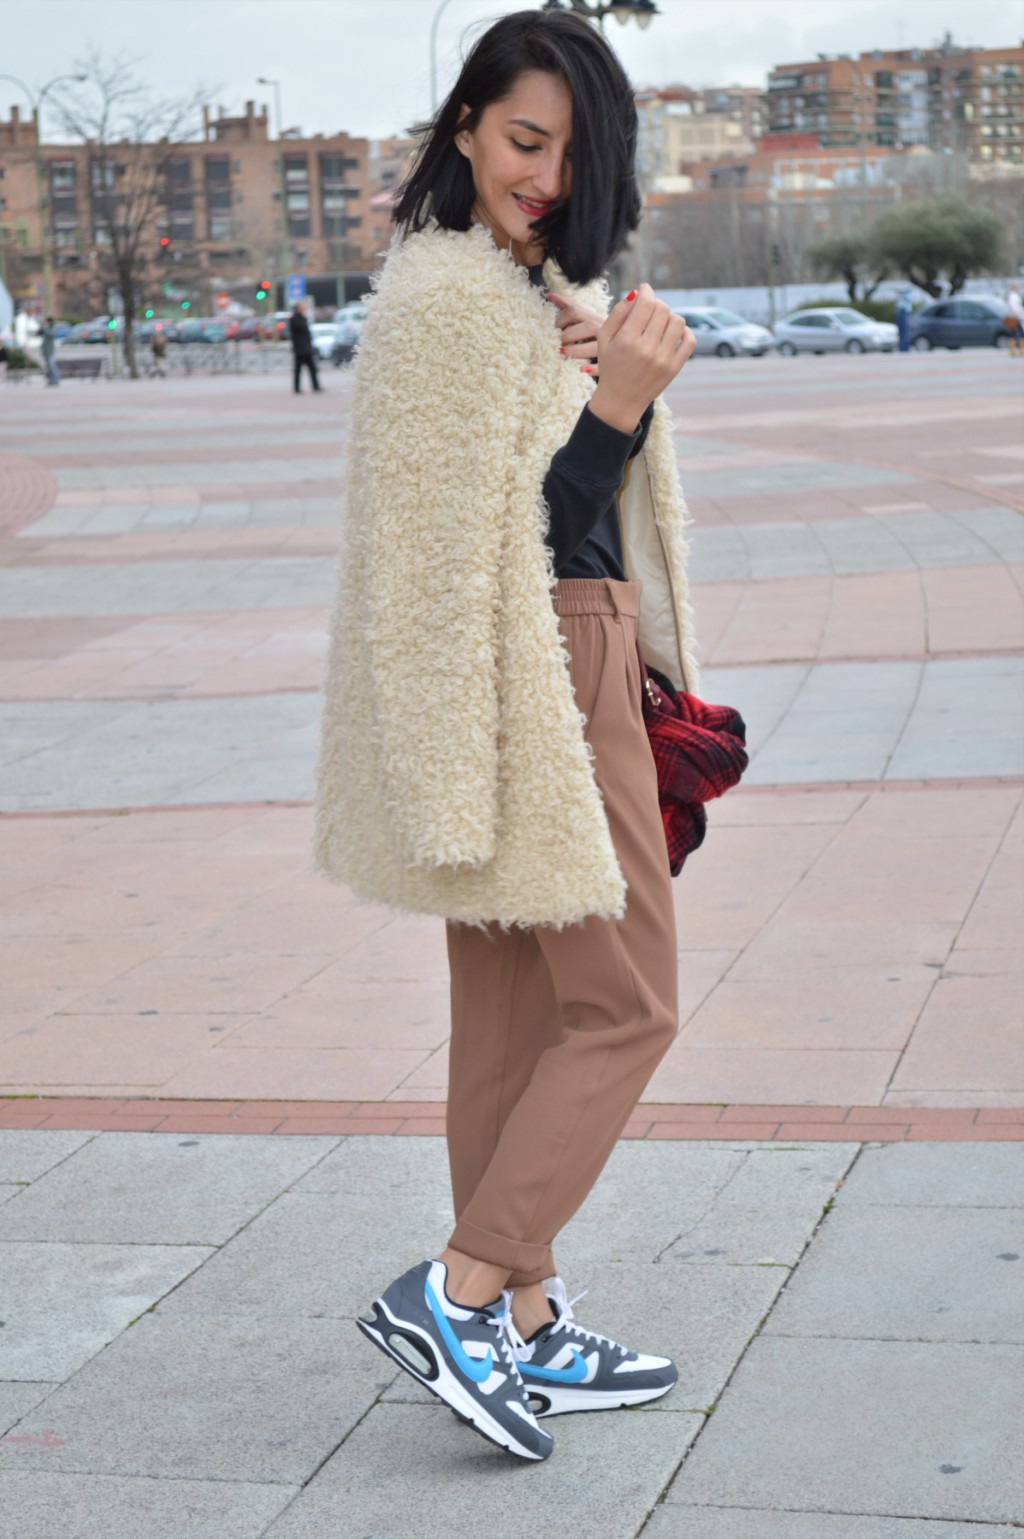 Abrigo / coat: Green coast Jersey: H&M (old) Pantalones / pants: Mango Sneakers: Nike Air max Bufanda / scarf: H&M (New) Collar / necklace: Sfera (New) Bolso / bag: Bershka